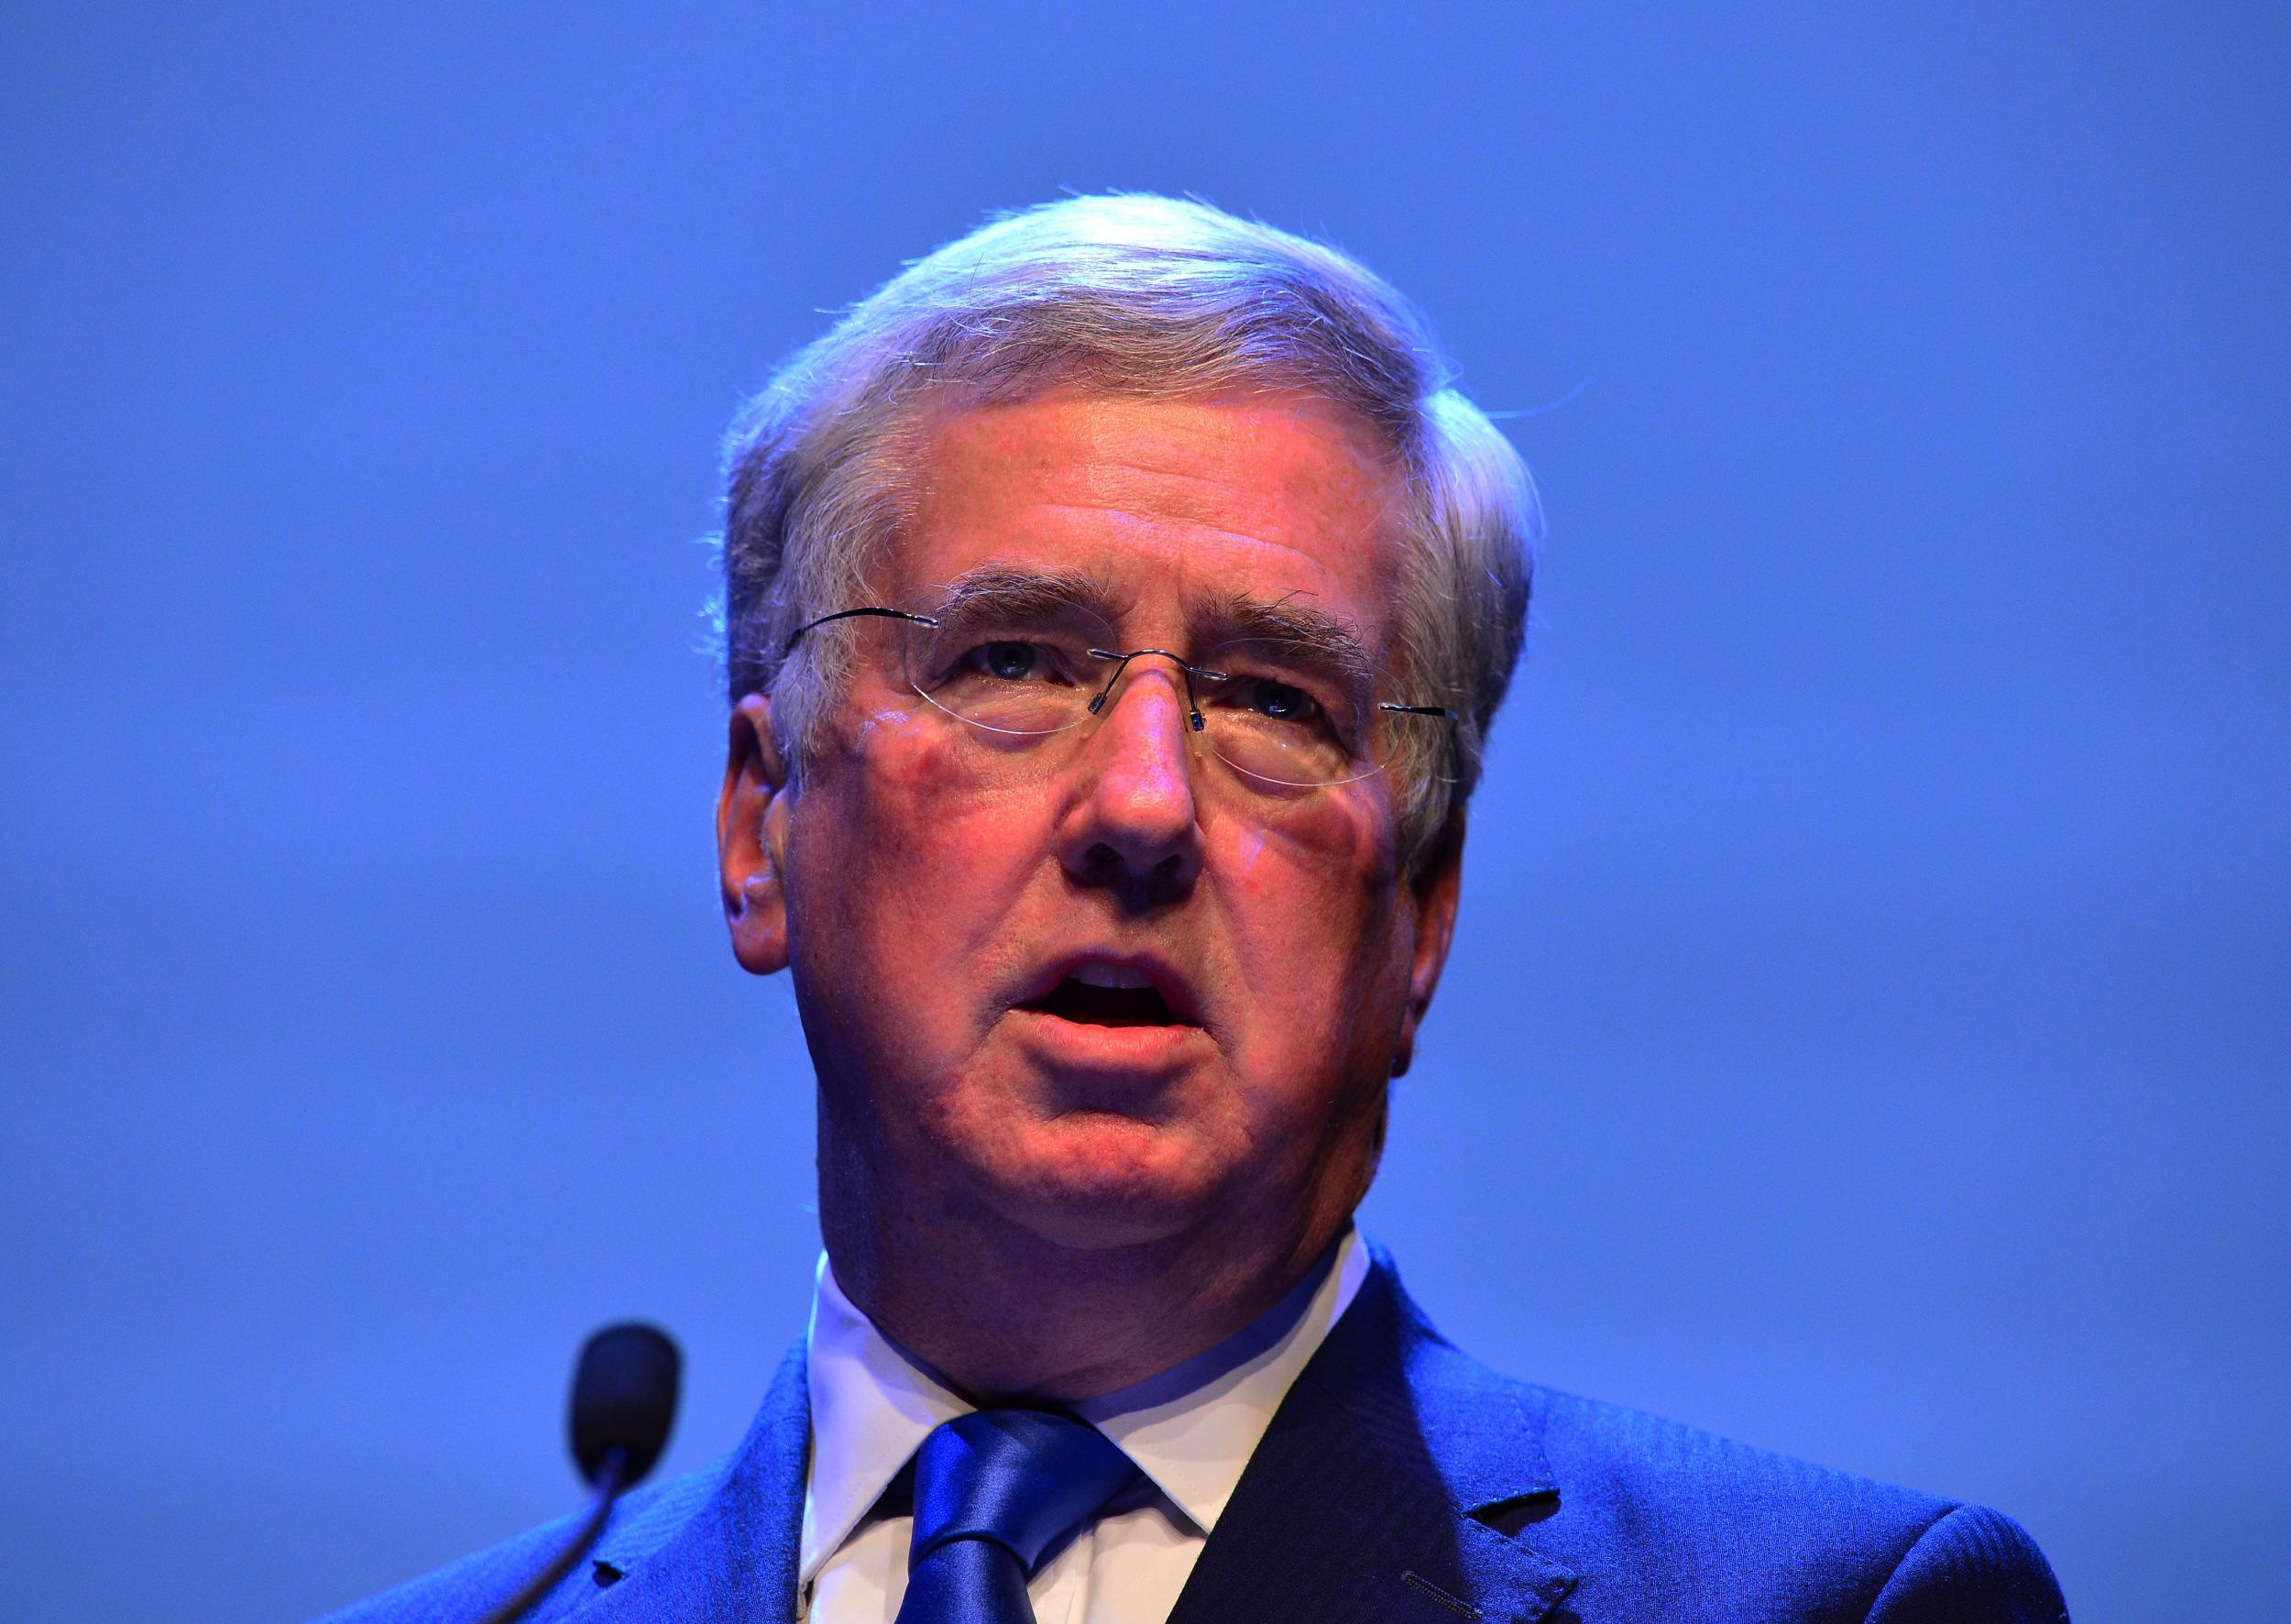 Michael Fallon wants to increase UK's arms trade after Brexit